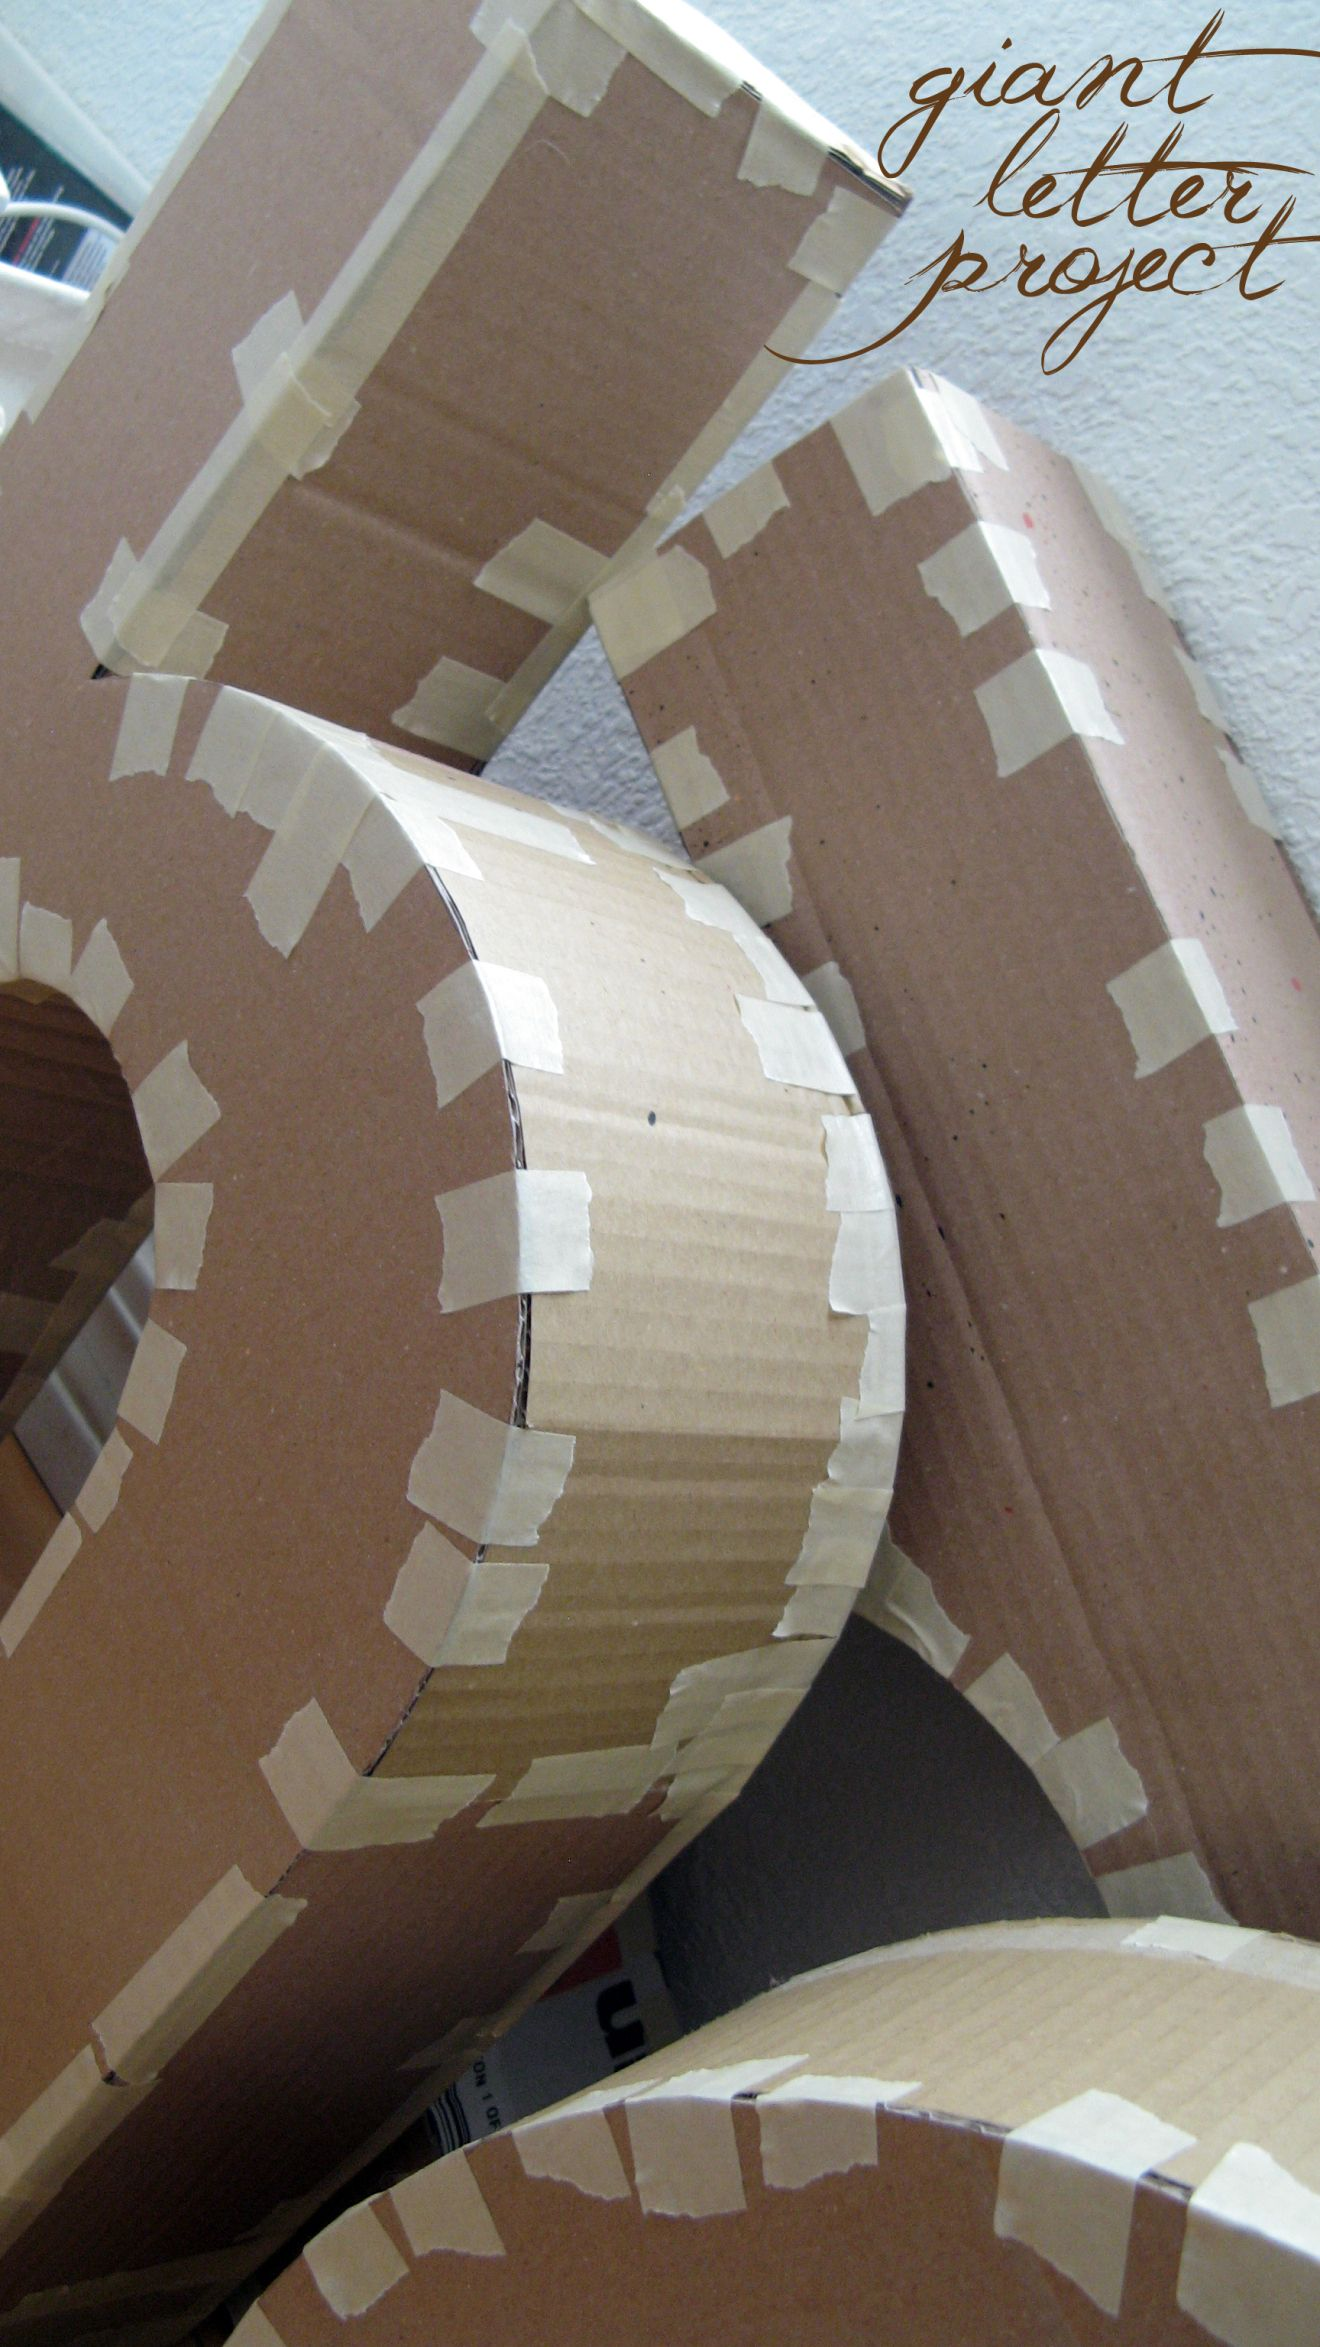 Giant Cardboard Letters In Progress To Be Used As Home Decor